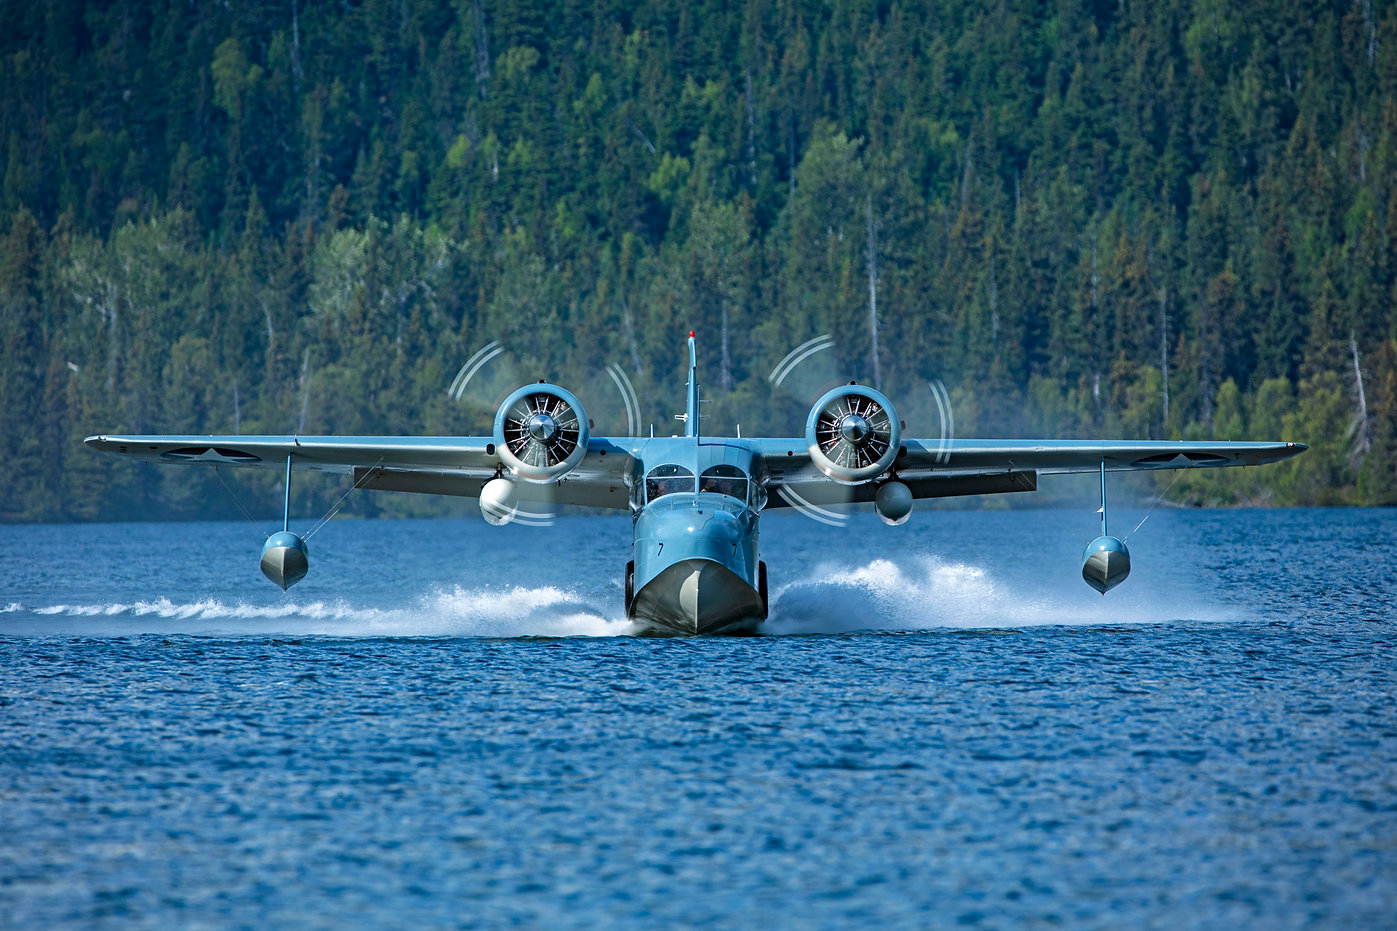 Flight Instruction Multi Engine Seaplane Alaska